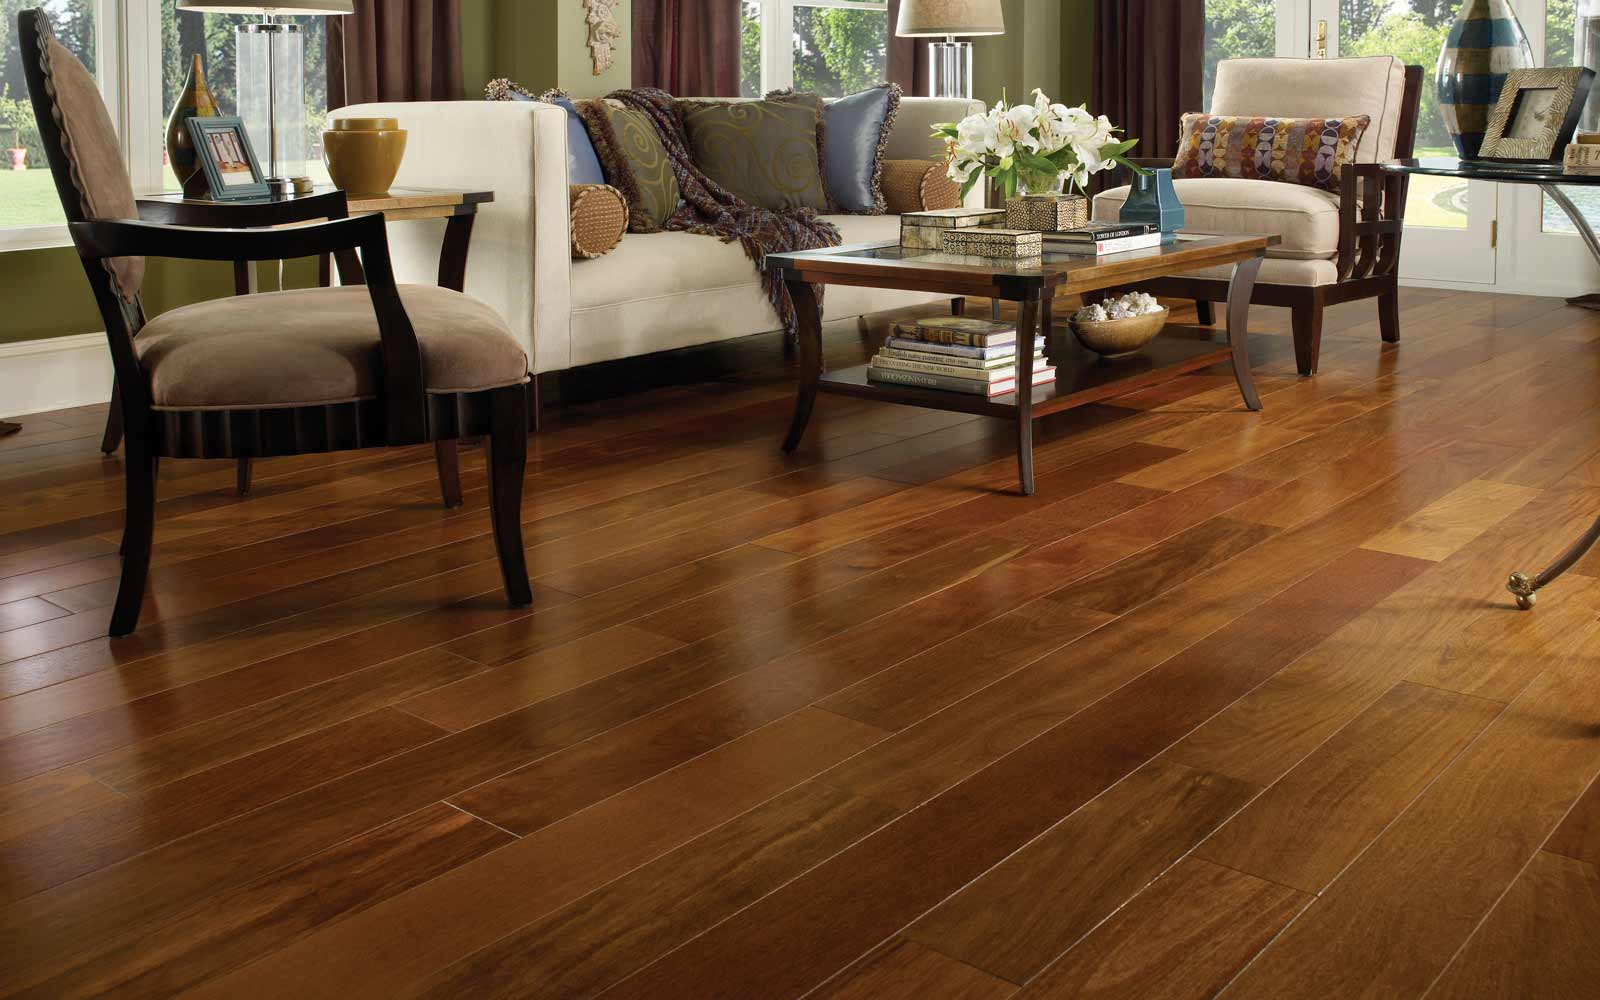 Fabulous Electric Floor Heating Mat Radiant Solutions With Home Flooring Solutions. & Home-flooring-solutions \u0026 If You Have Just Moved Into A New Home Or ...